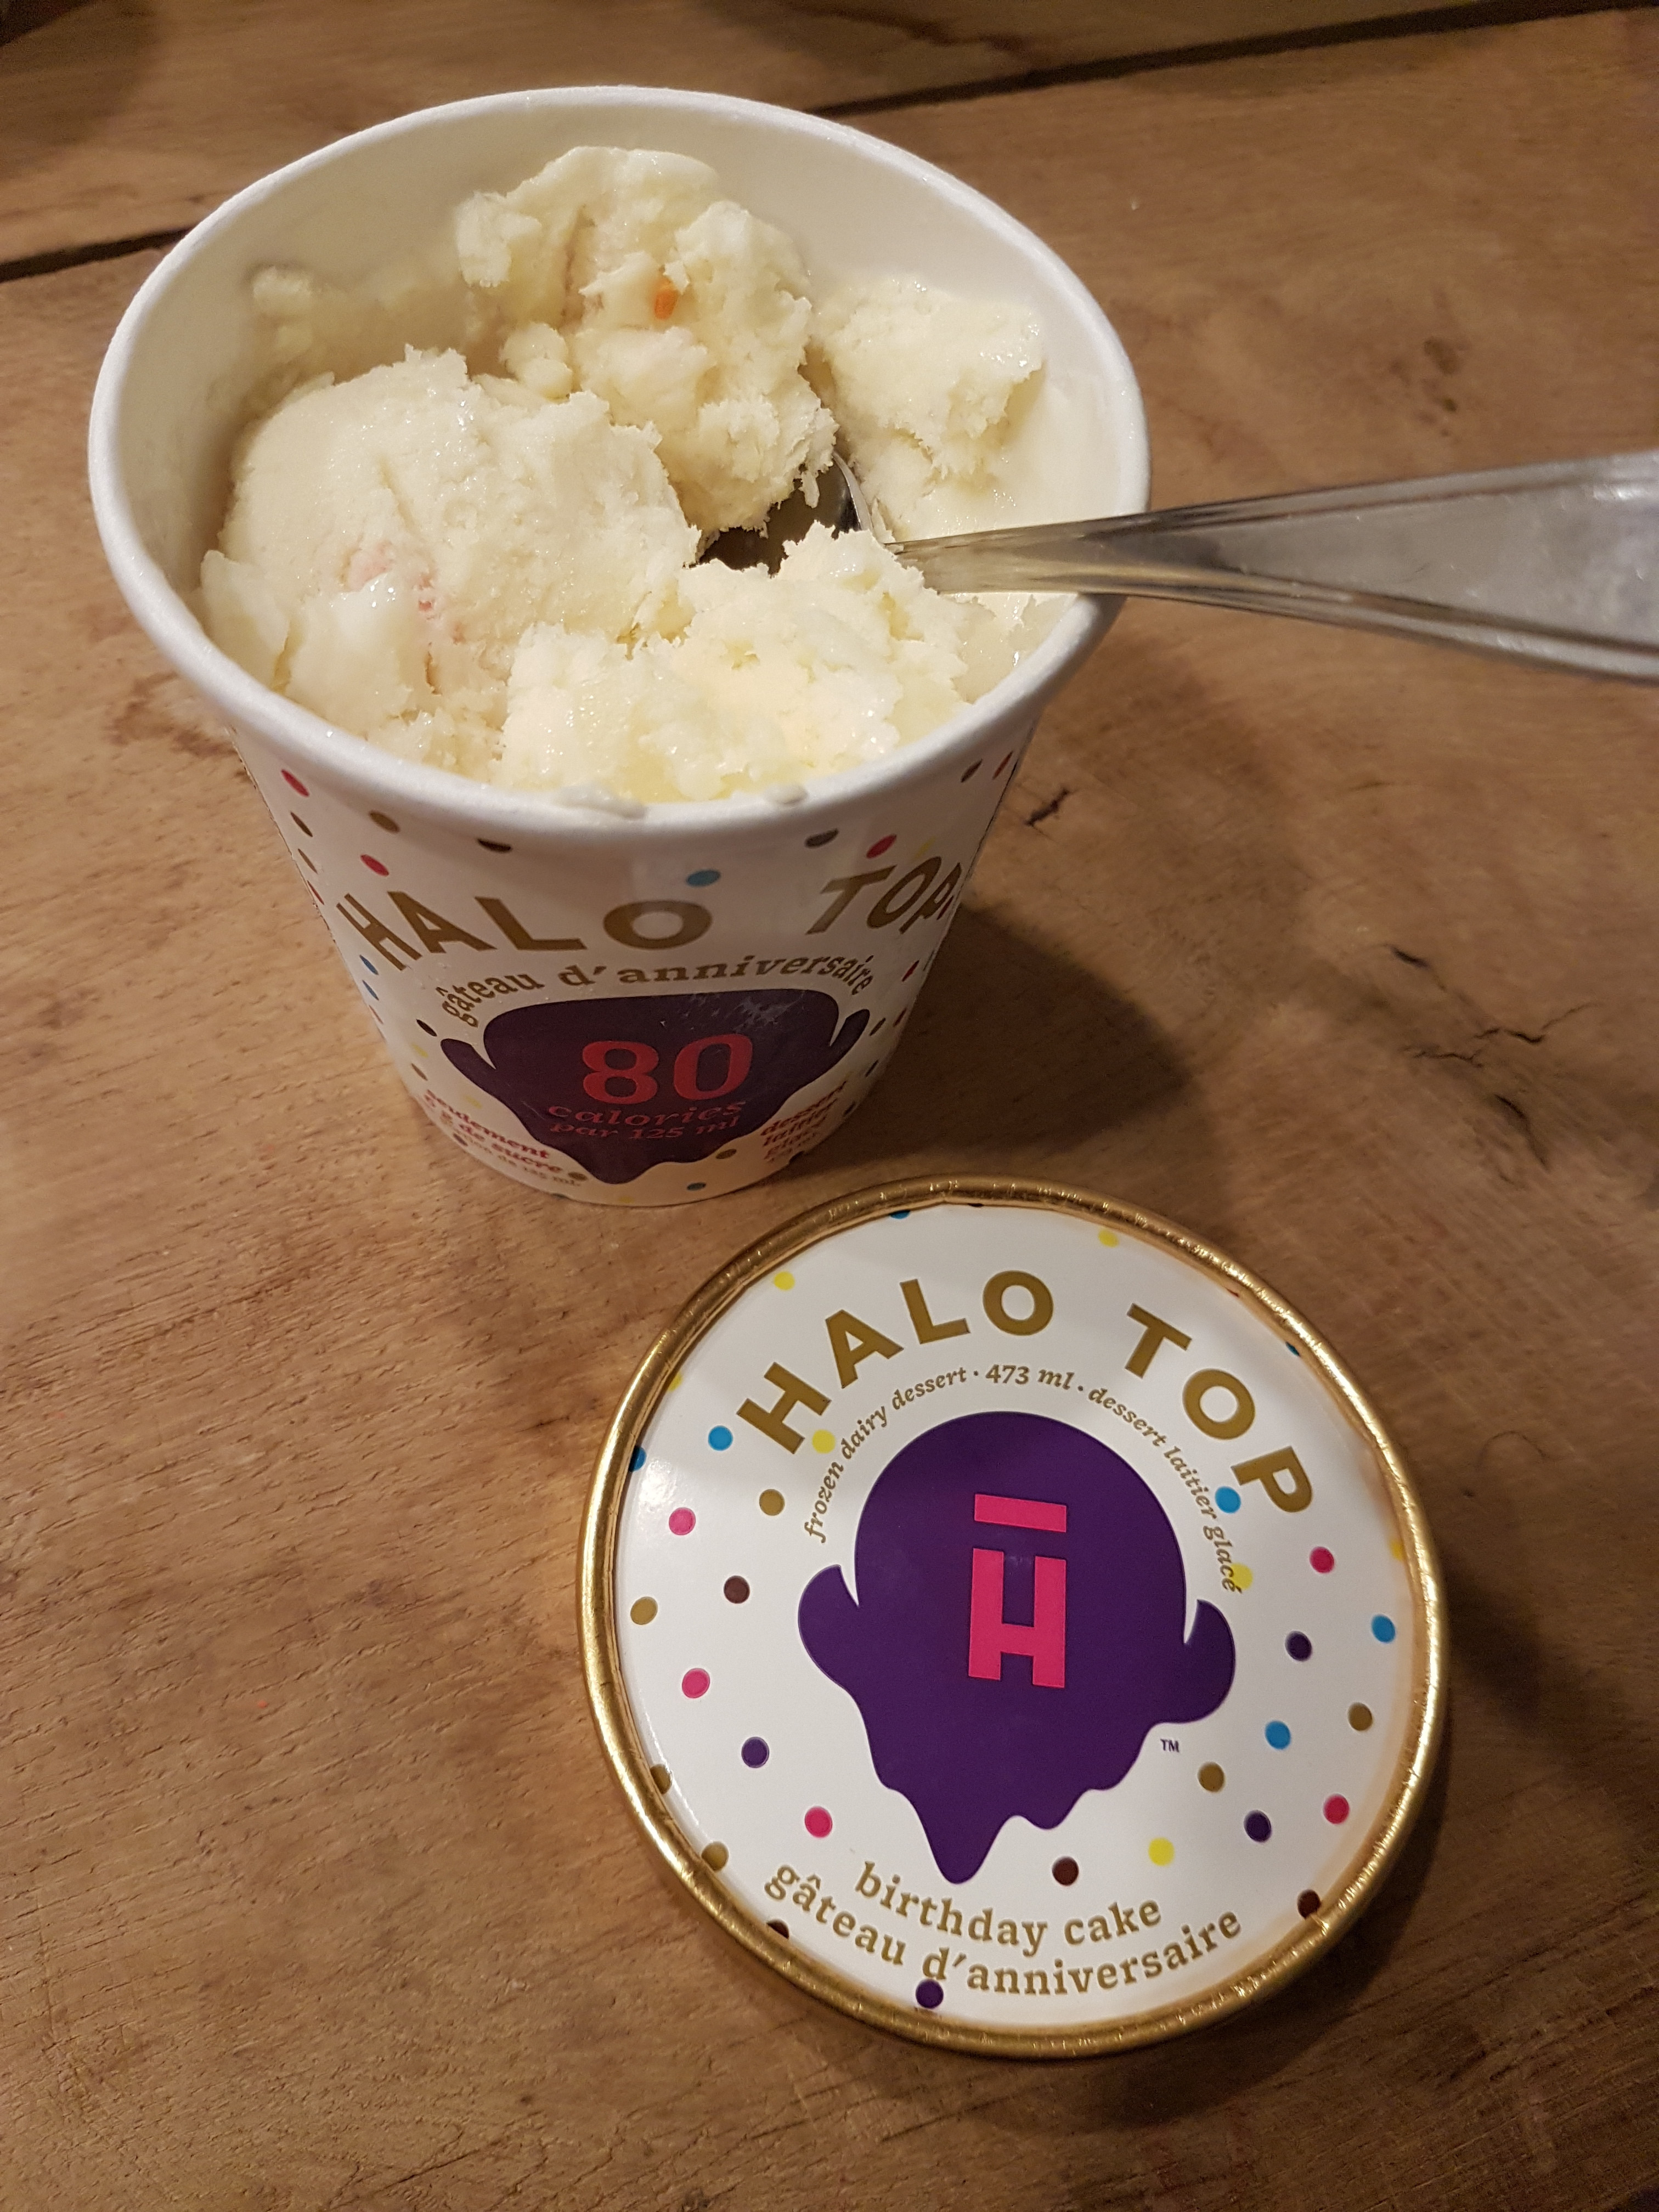 Best ideas about Halo Top Birthday Cake . Save or Pin Halo Top Birthday Cake reviews in Frozen Desserts Now.